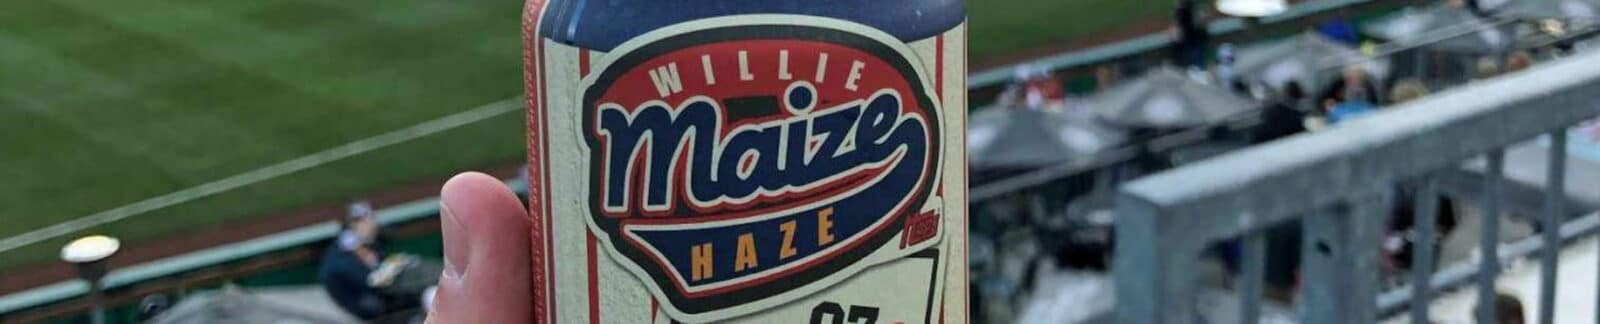 Willie Maize Haze - header